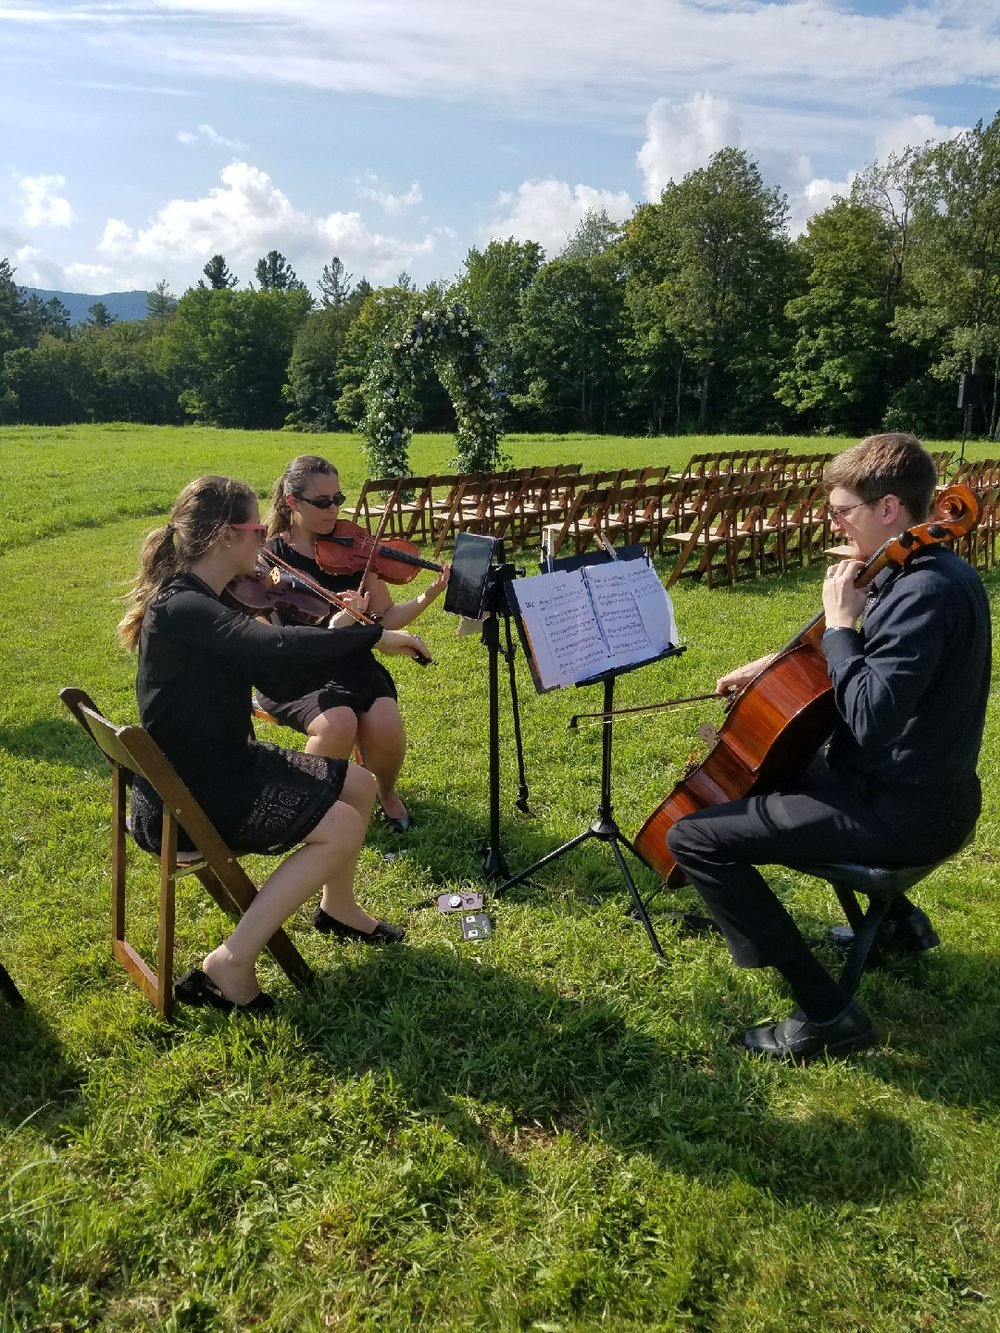 Our summer was full of gigs! Wedding ceremony in Vermont with one of our ensemble members, cellist Ben Thayer. L-R: Brittany Stockwell, Sylvia DiCrescentis, Ben Thayer.